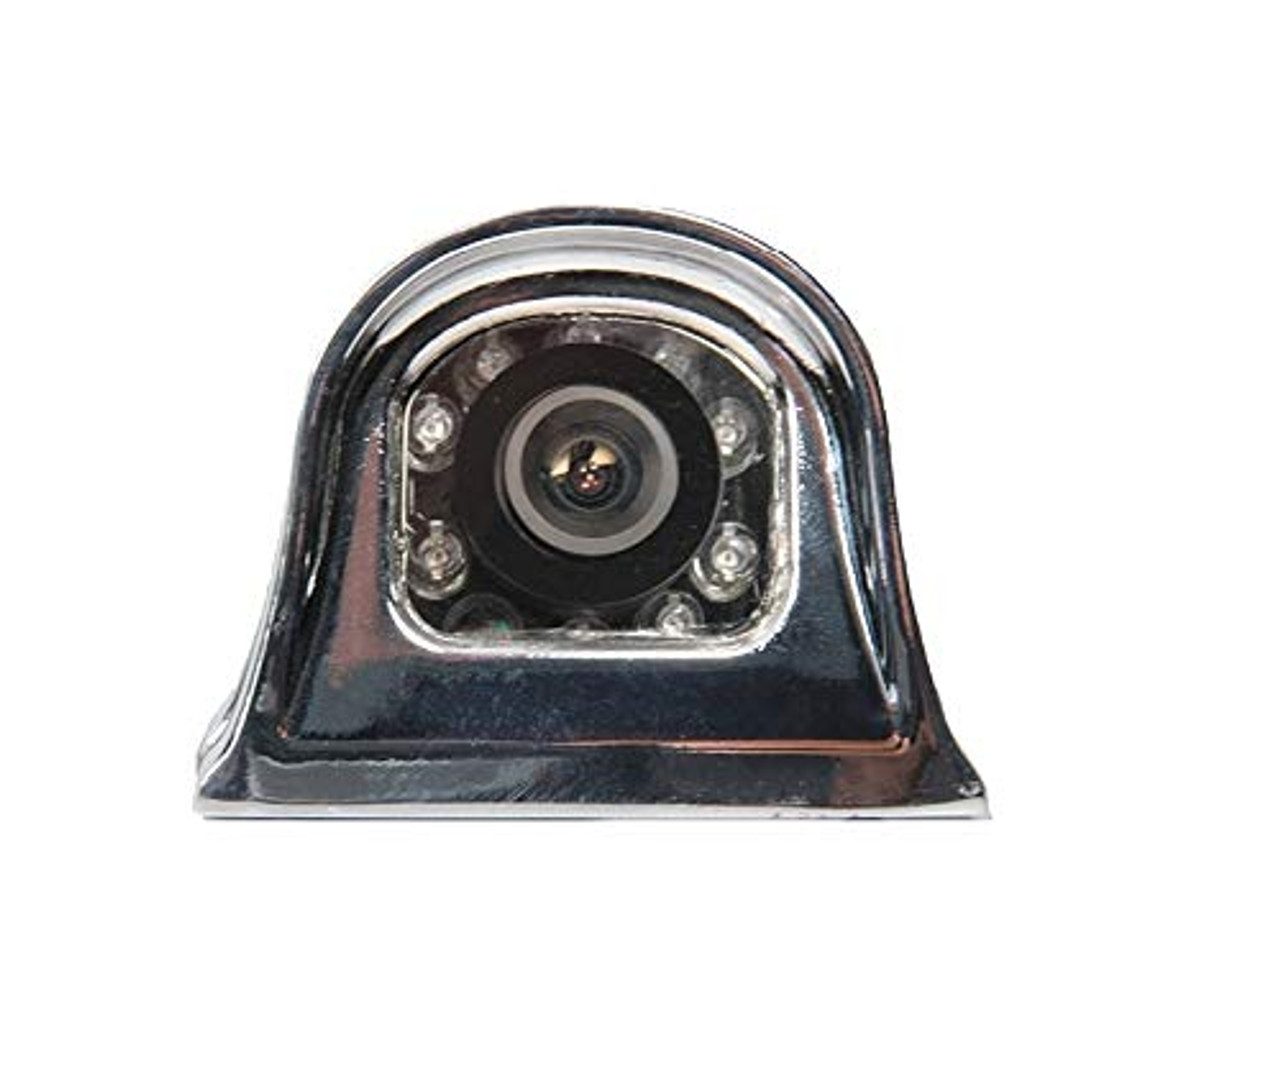 Chrome Right Side Camera, 33' Cable, RCA Adapter | 1016VYMS6C5